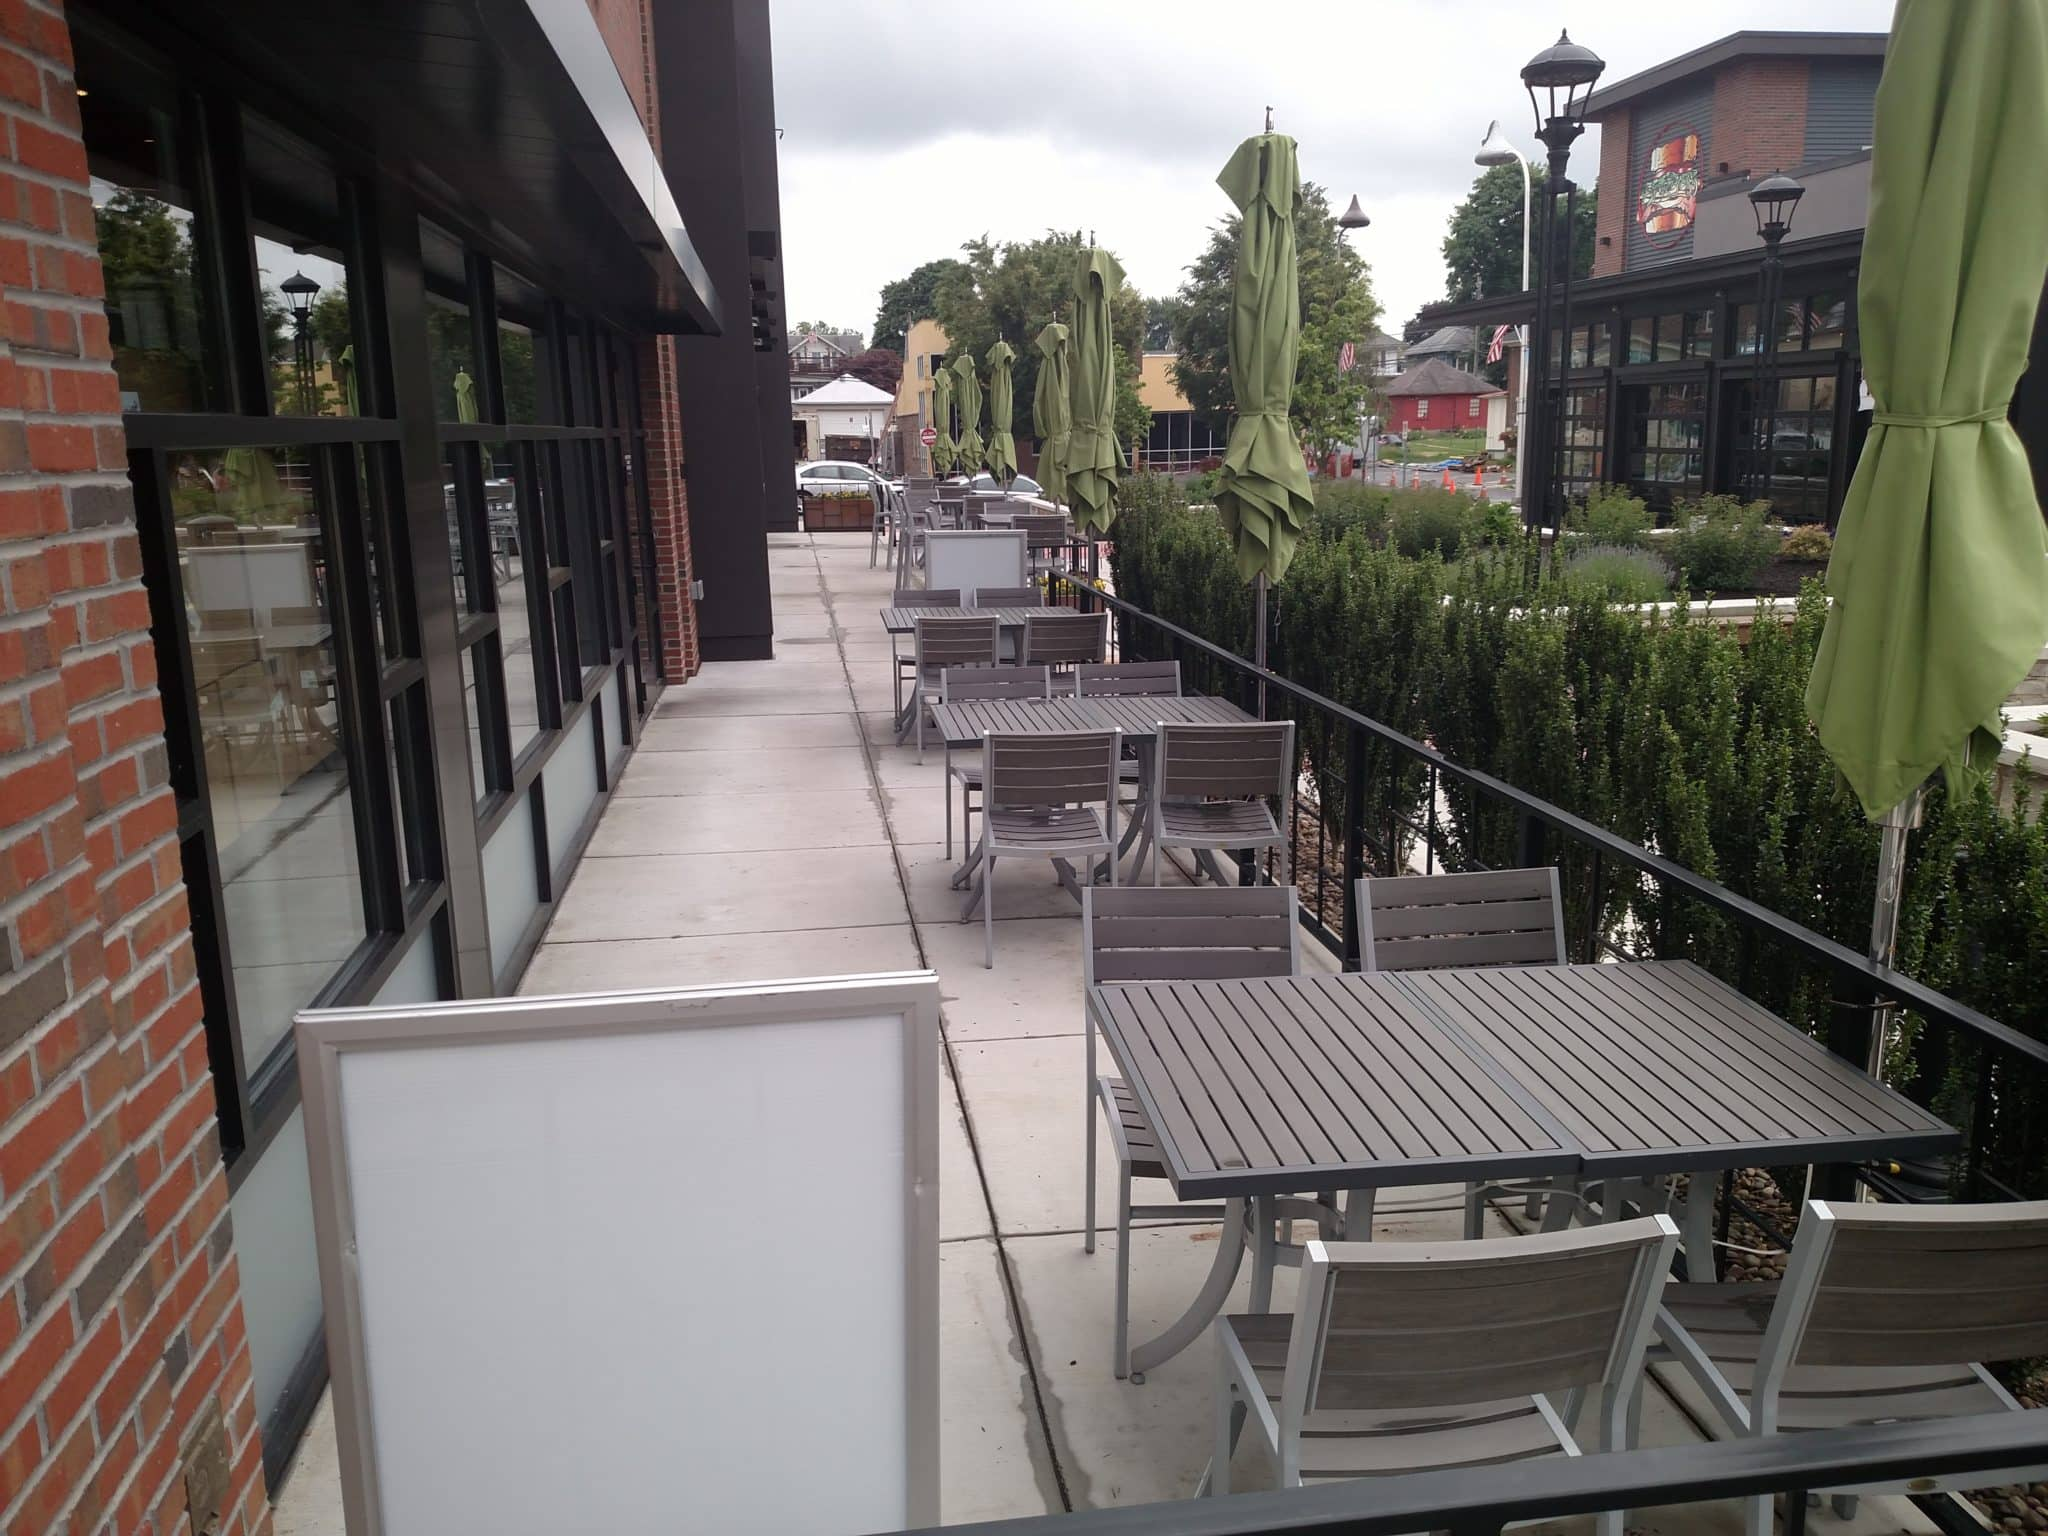 outdoor dining area showing tables with umbrellas